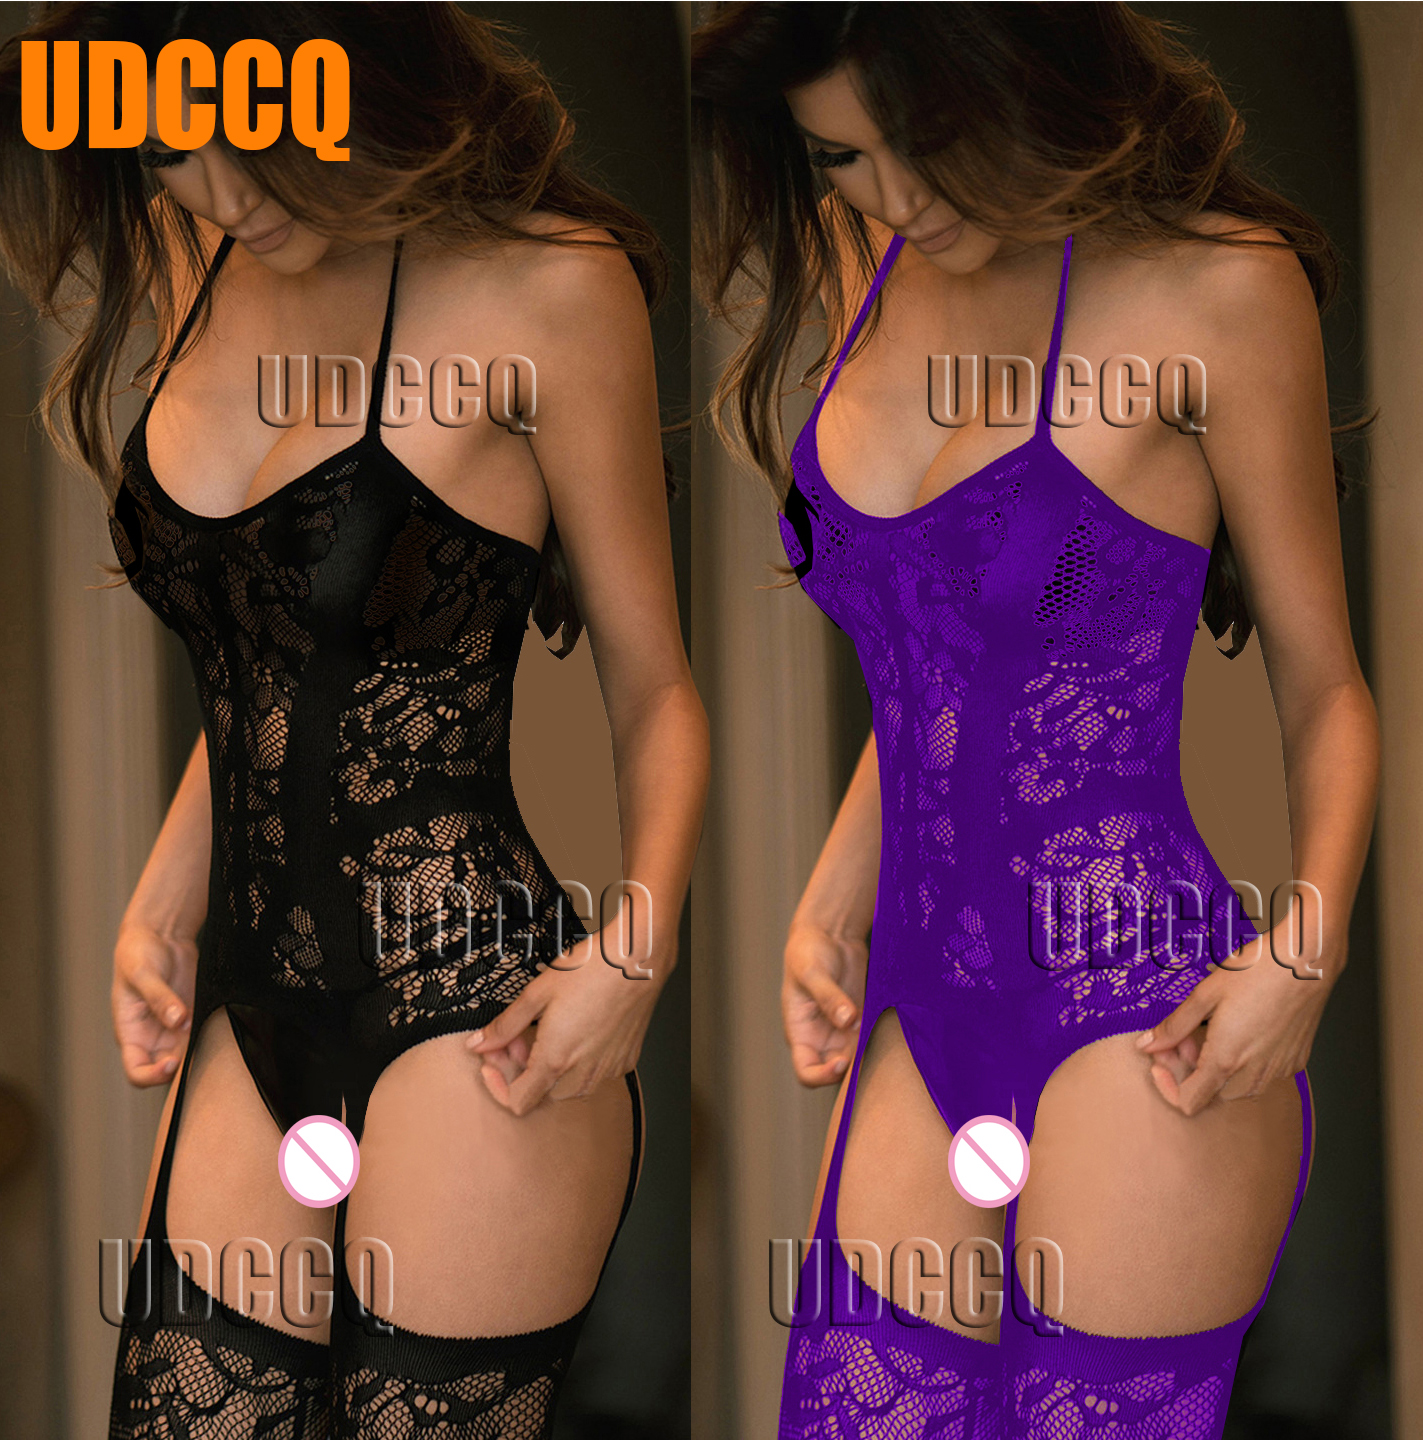 <font><b>Sexy</b></font> FishNet Lingerie <font><b>Babydoll</b></font> baby doll dress wedding night Underwear intimates Chemises Body stocking costumes Negligees 9911 image